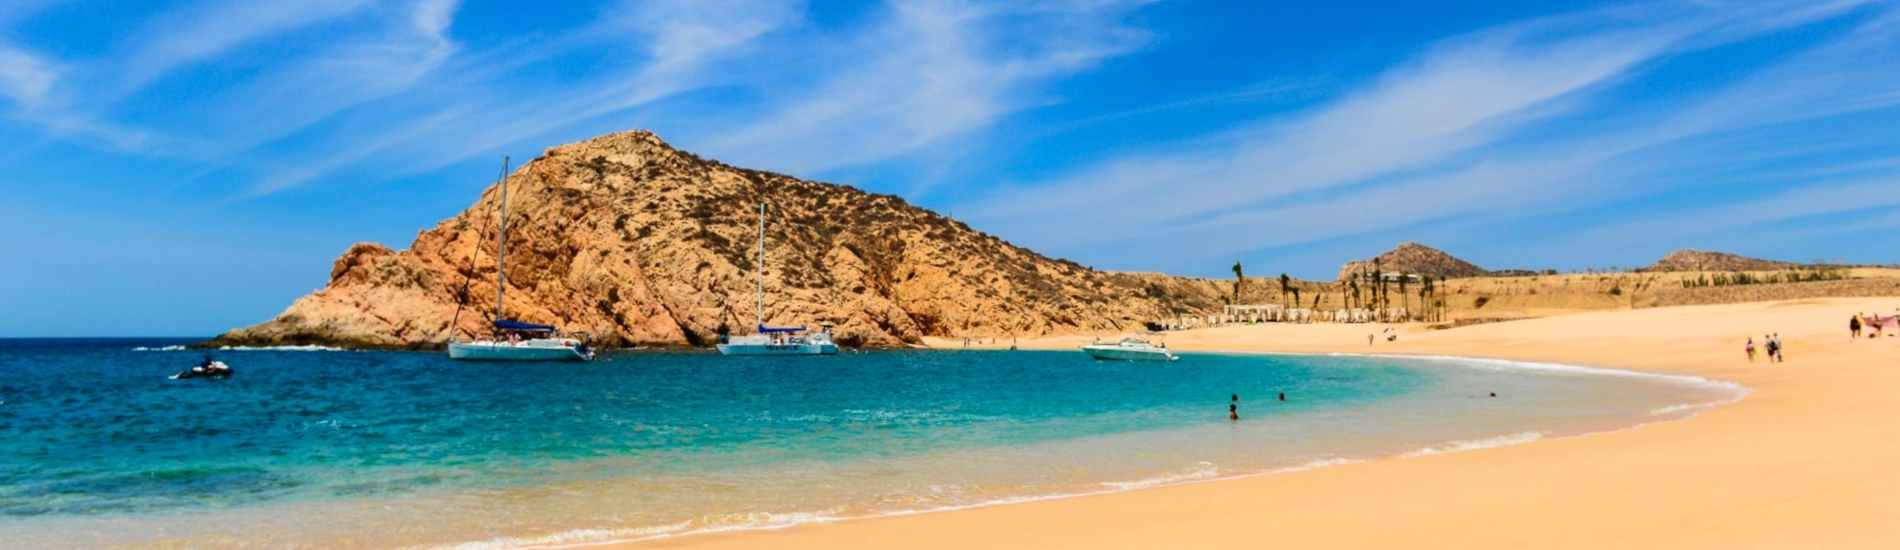 7 Swimmable Beaches in Los Cabos - Journey Mexico